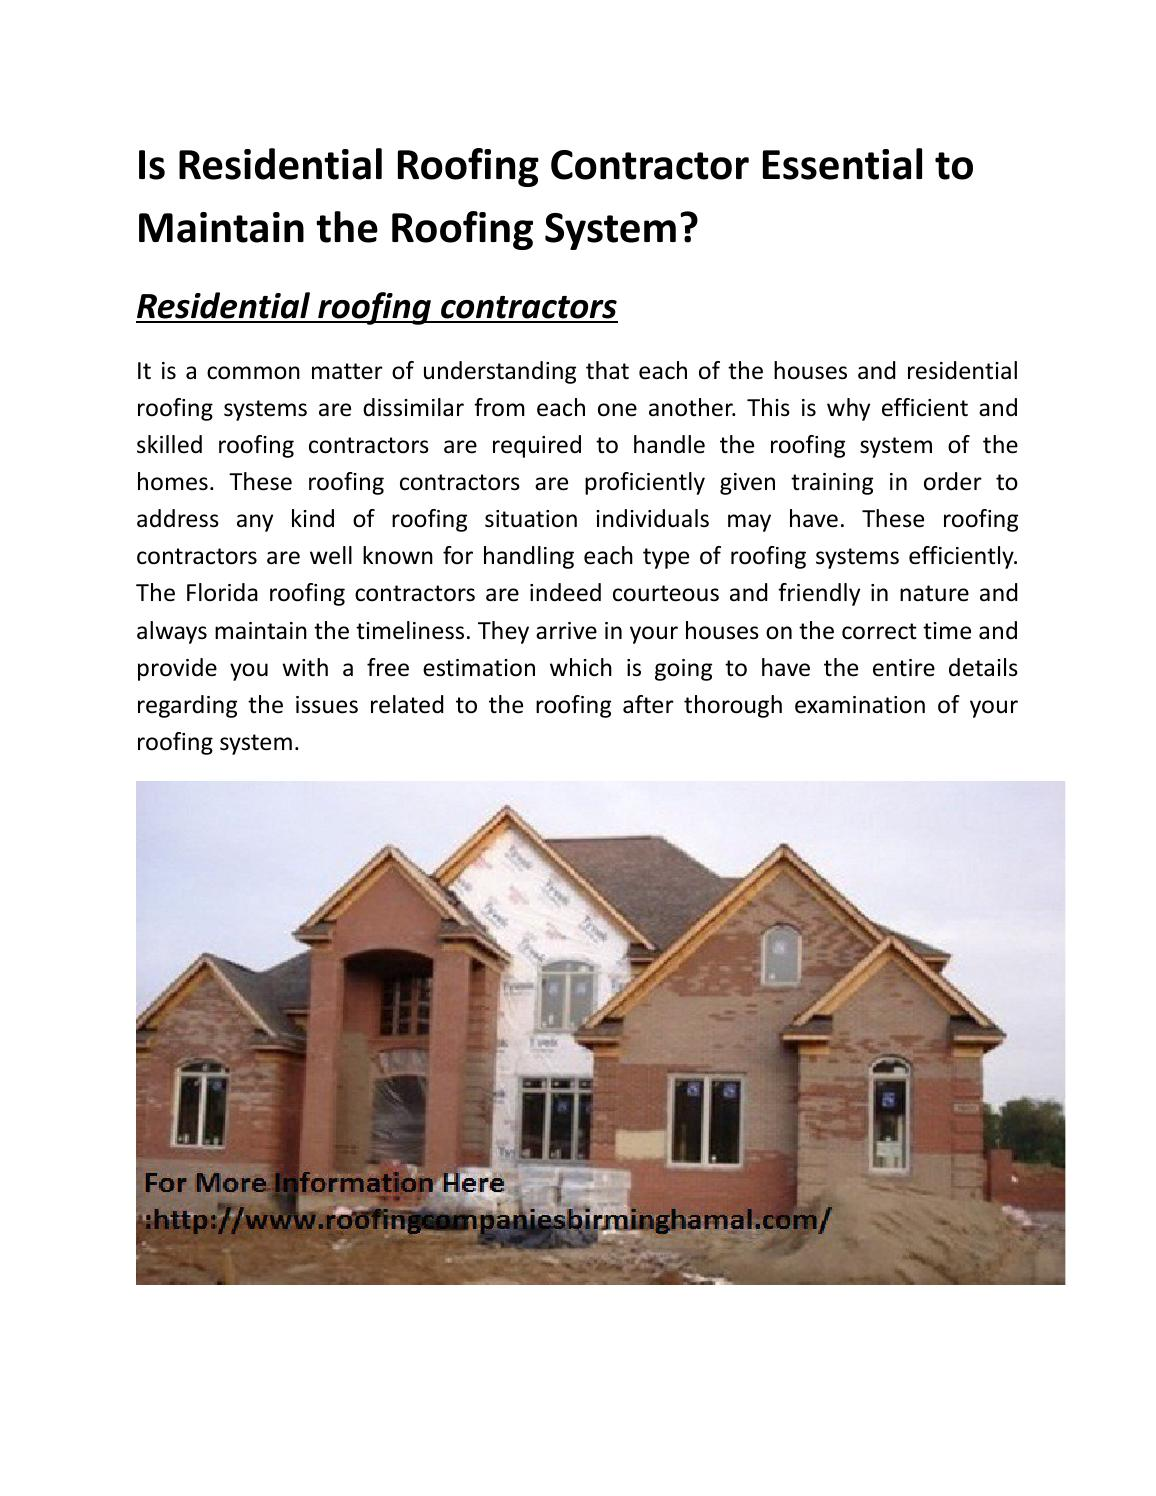 Examination of the roof - all the details